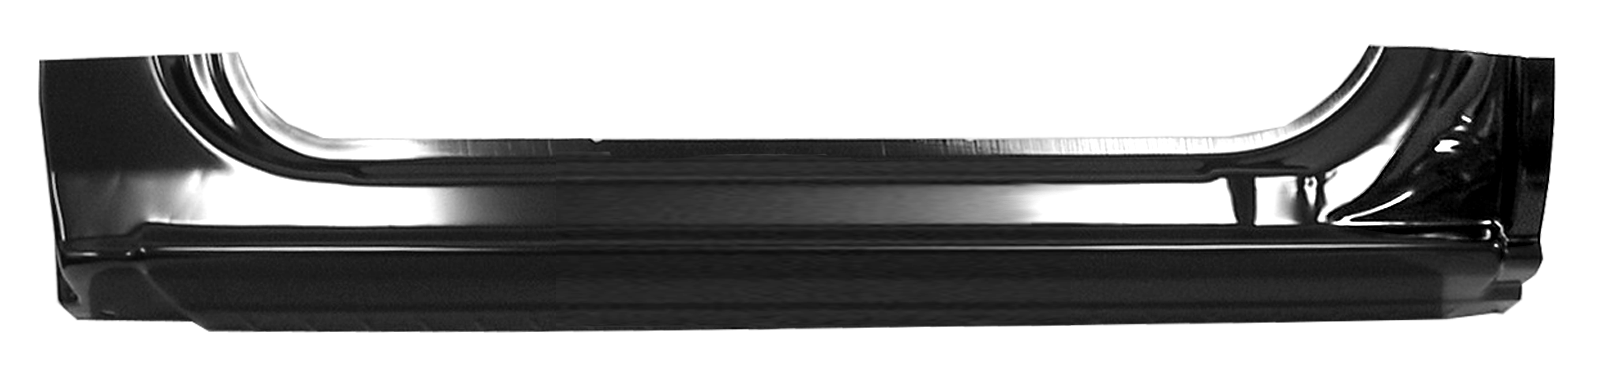 1999-2006 Silverado full rocker panel 2 door lt